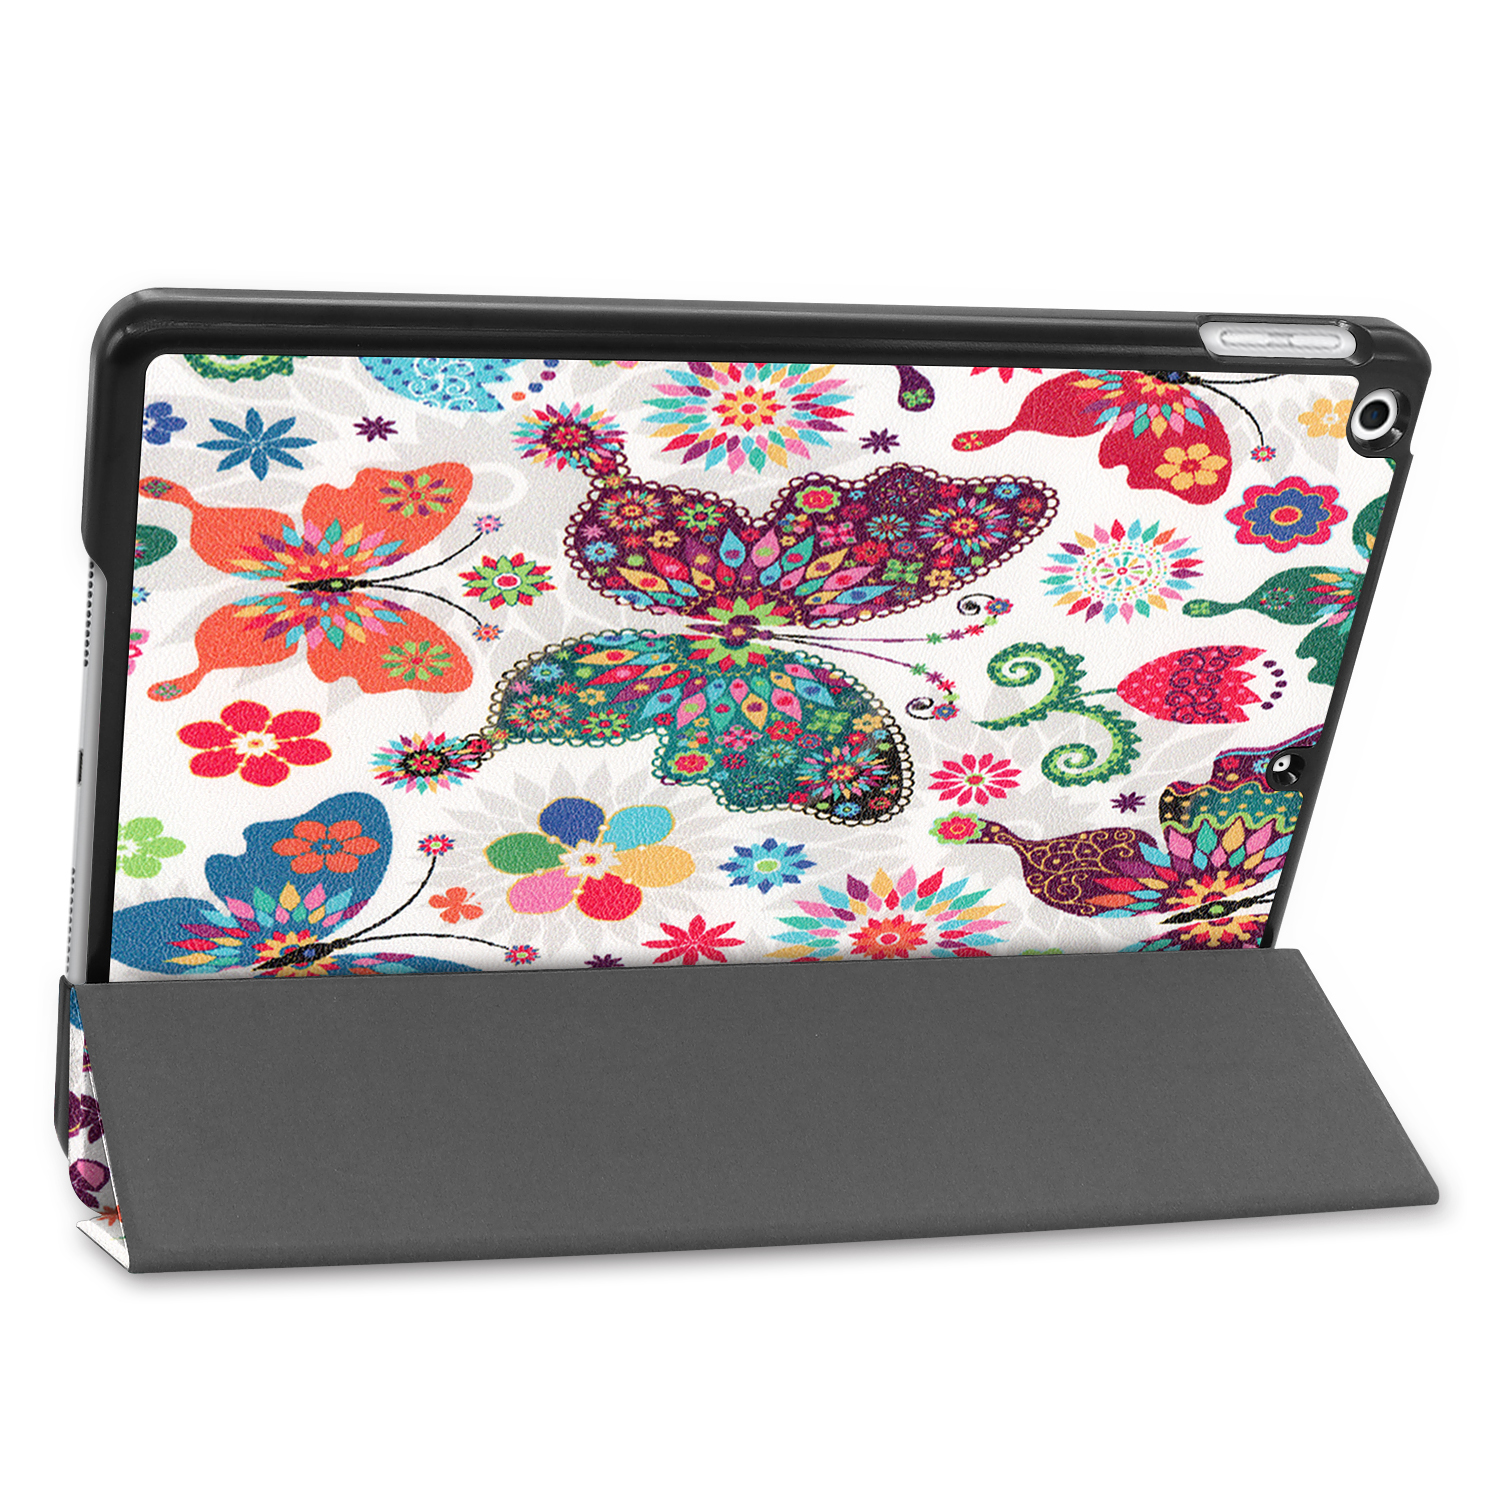 Magnetic Sleep 8-8th-Generation Smart-Cover A2428/a2429 Case Apple iPad/8th/Cas iPad for